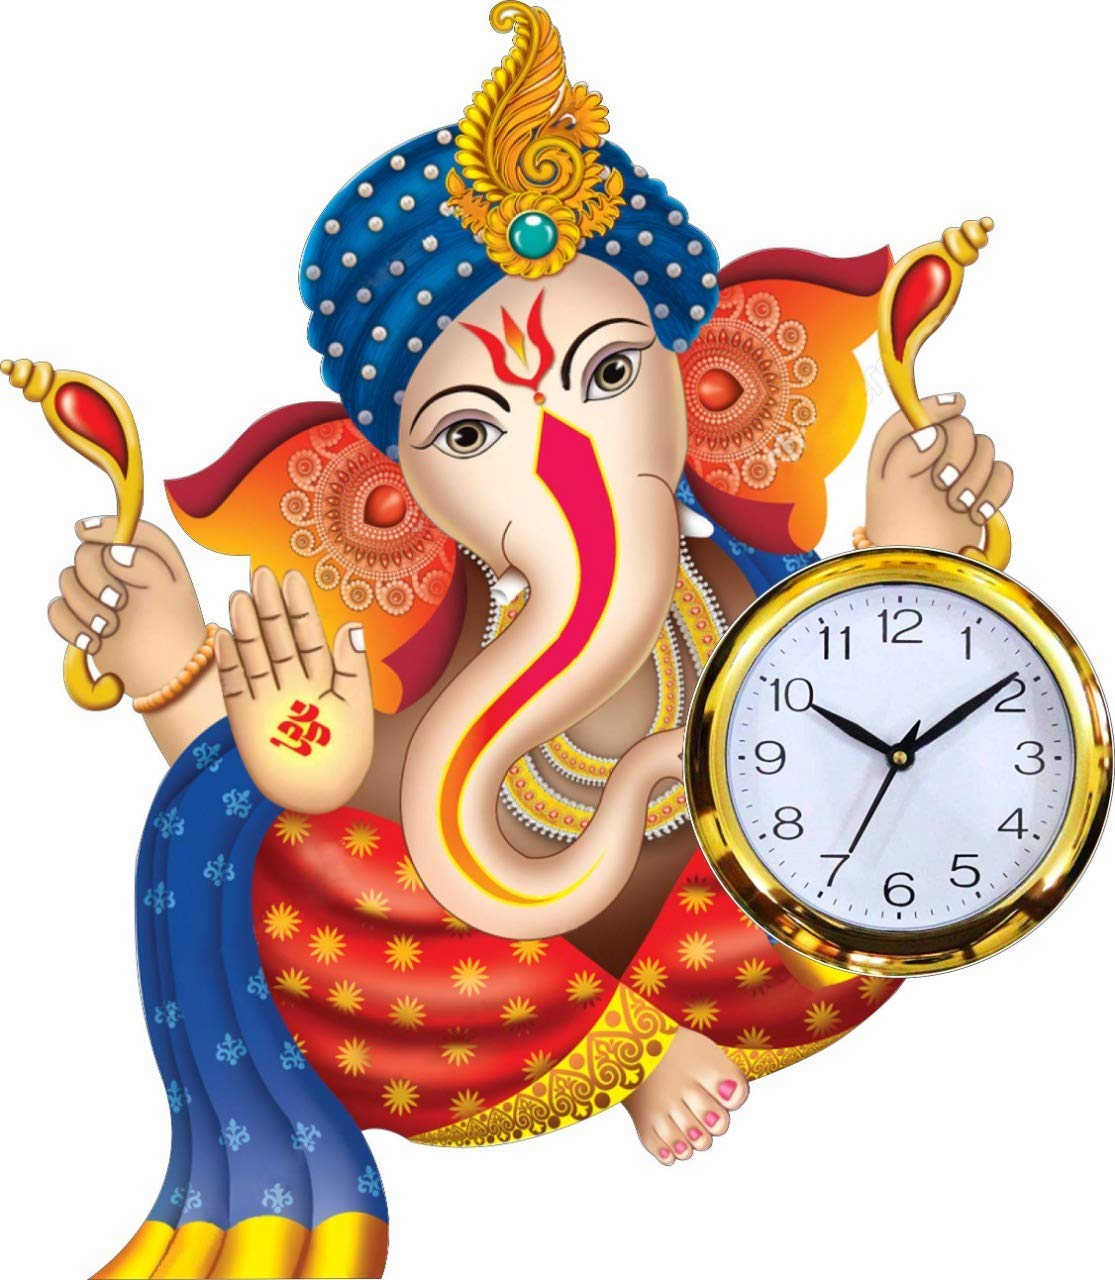 Lord Ganesha Analog Wall Clock For Homekitchenliving Roomofficesdrawing Room By Kk Craft